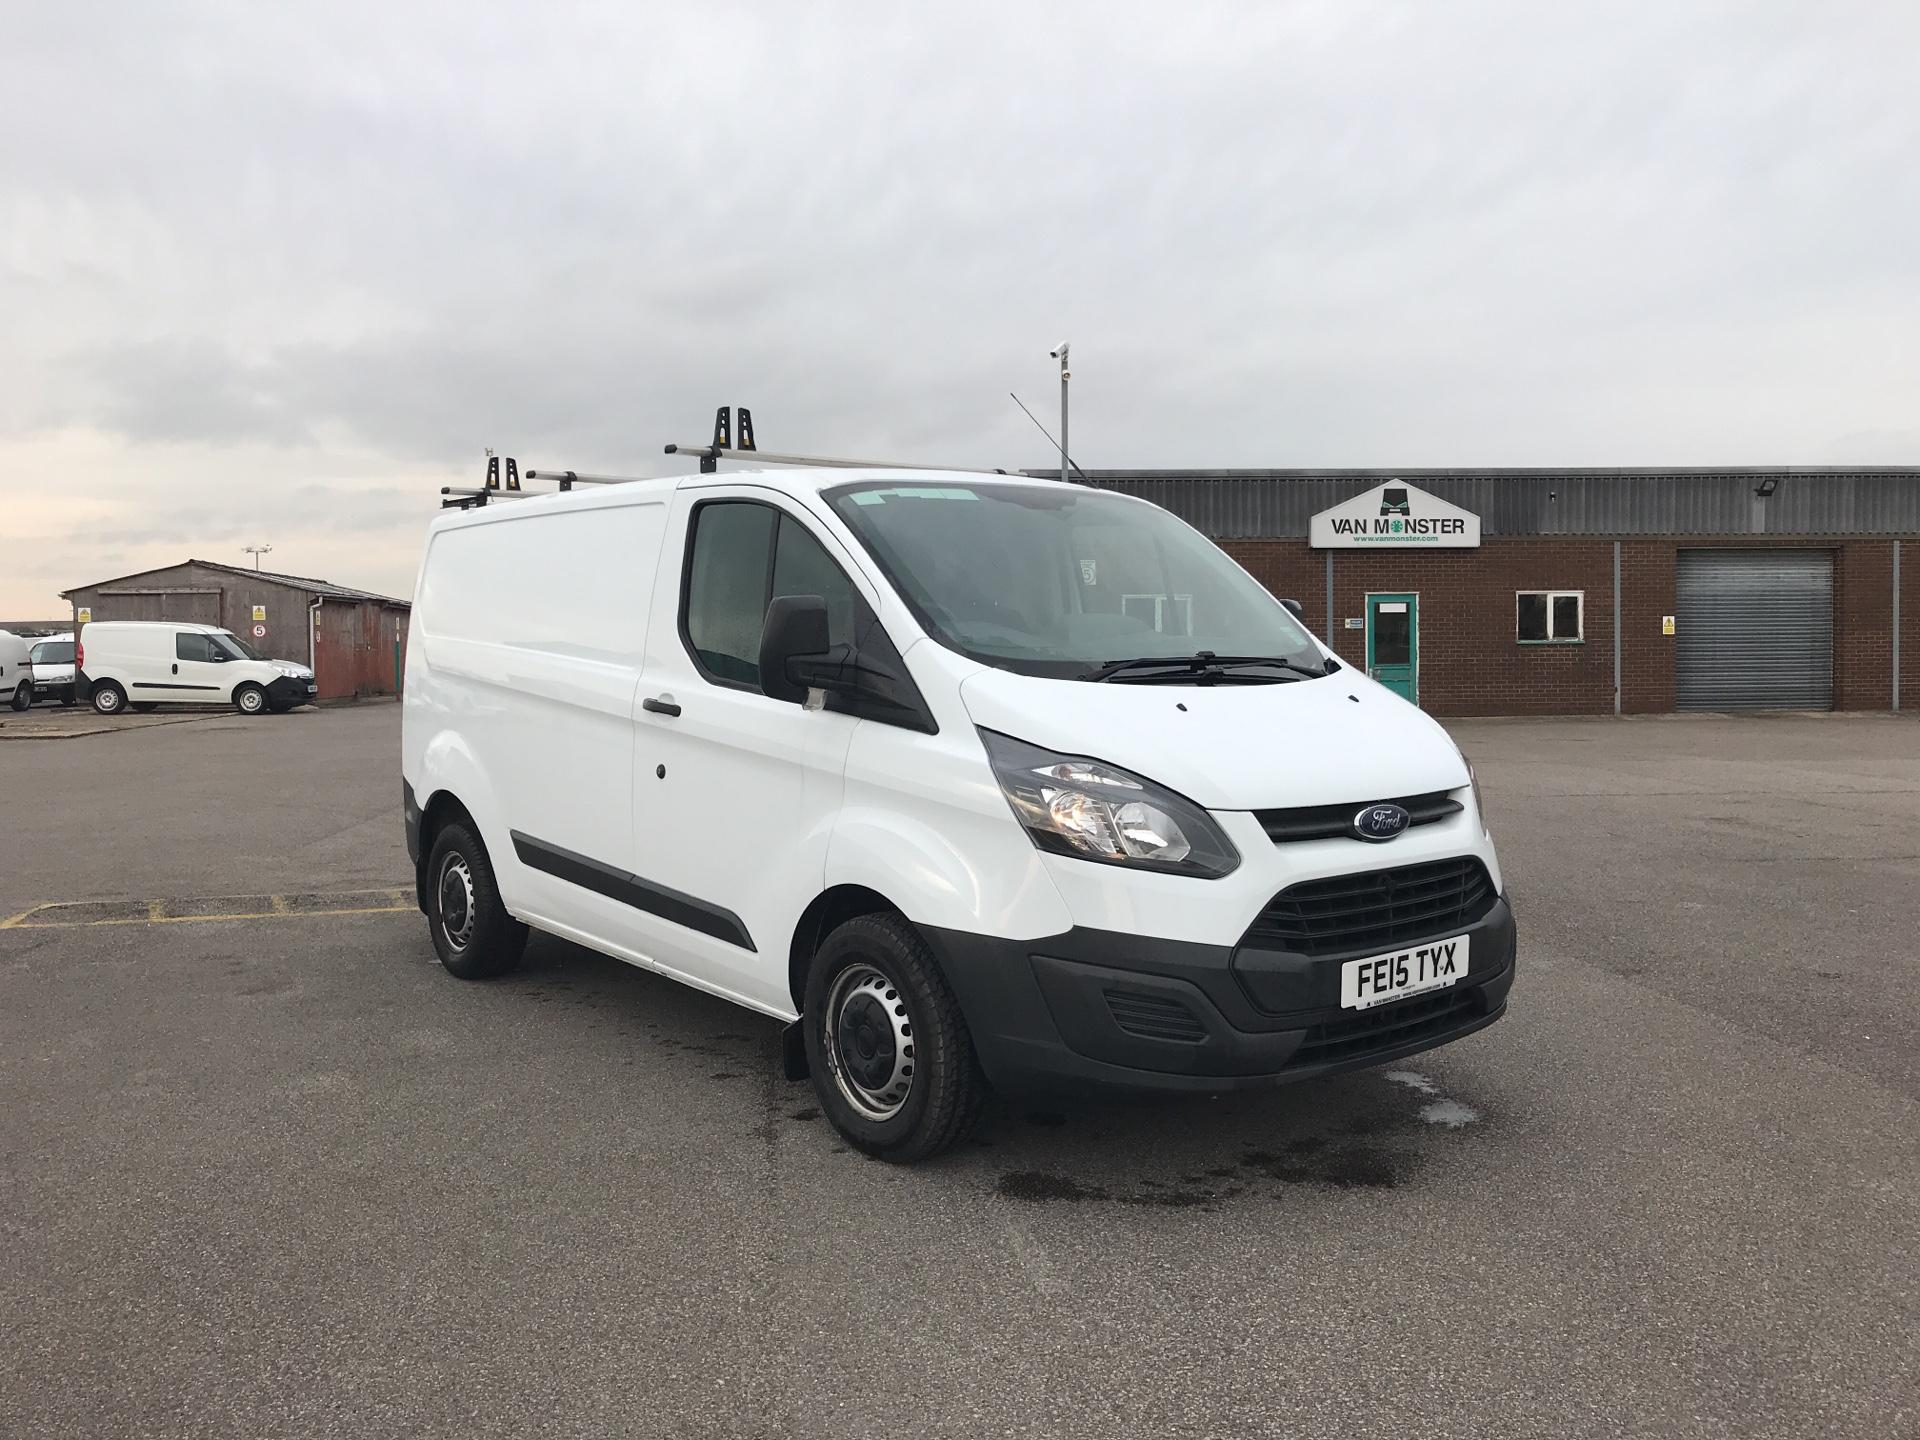 2015 Ford Transit Custom 290 L1 DIESEL FWD 2.2 TDCI 100PS LOW ROOF VAN EURO 5 (FE15TYX)